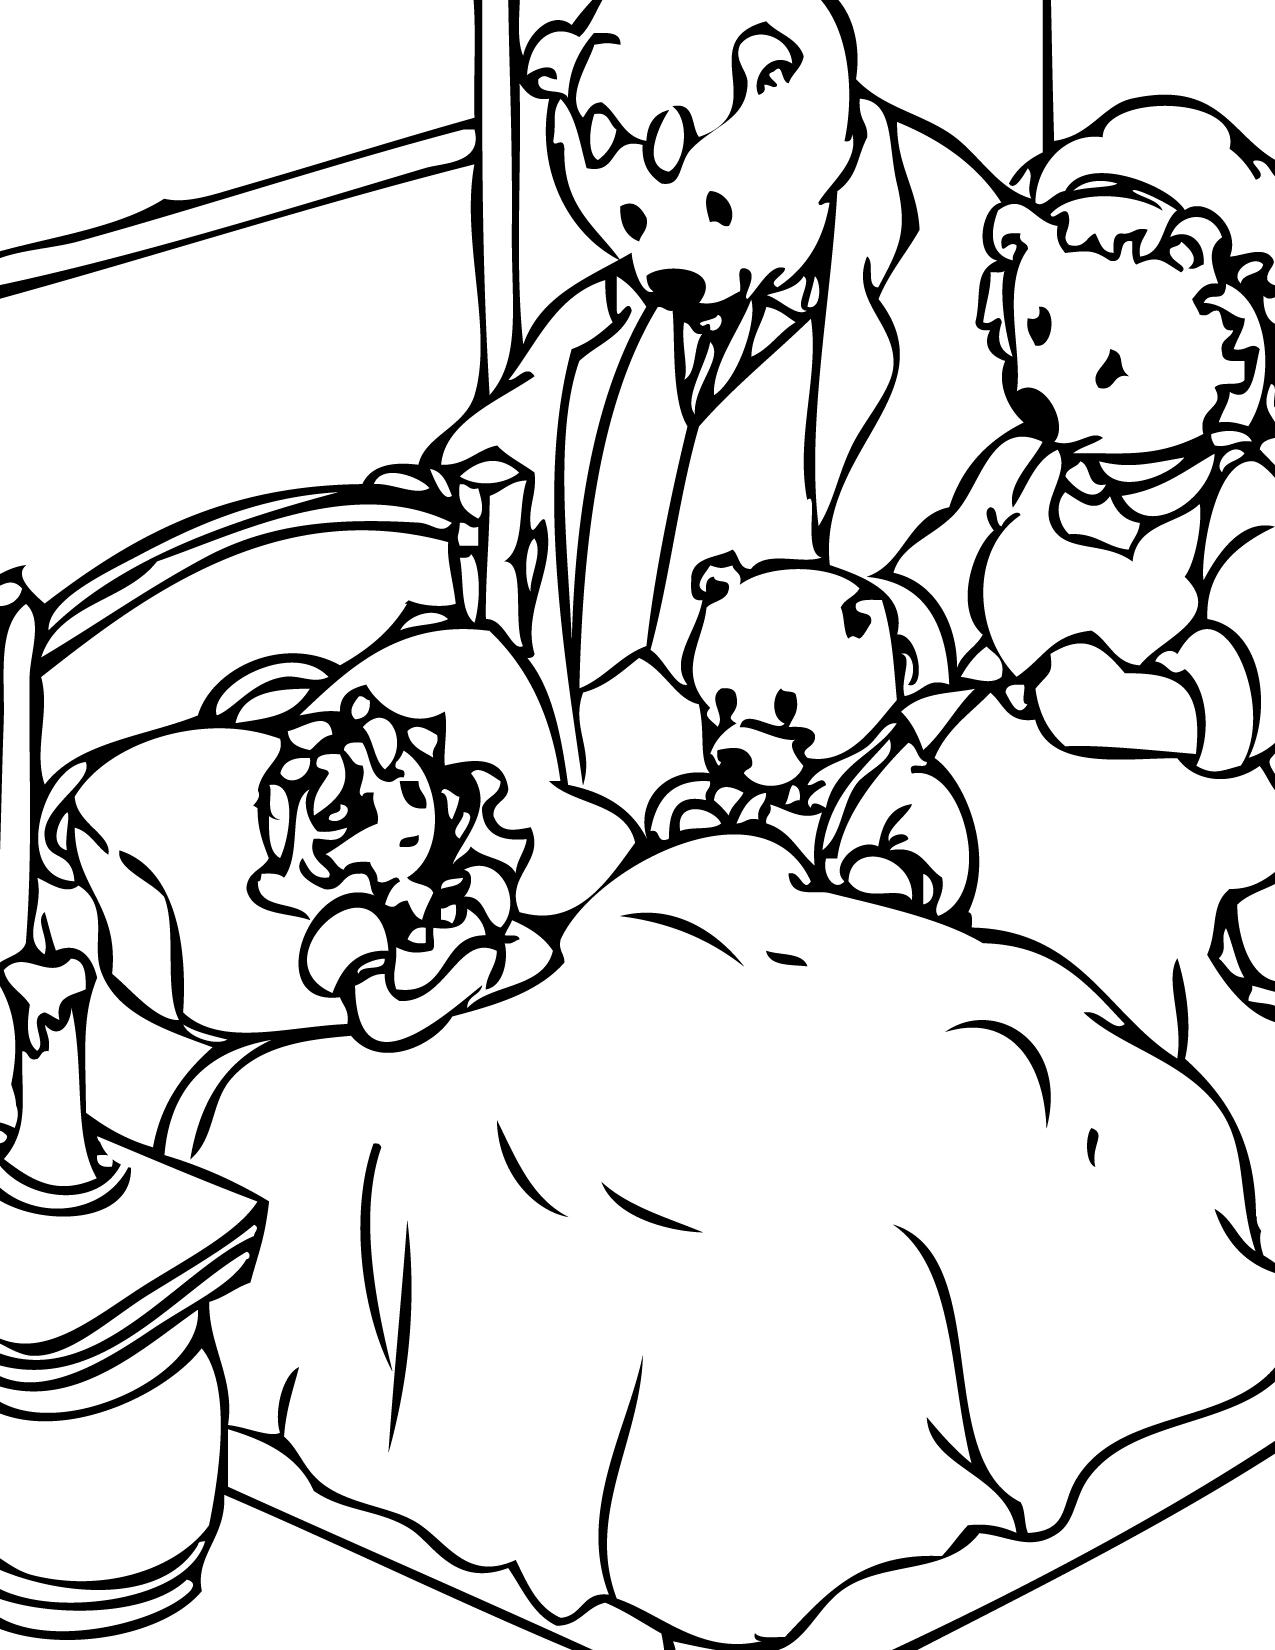 Colouring pages goldilocks and three bears - Goldilocks And The Three Bears Coloring Page Handipoints